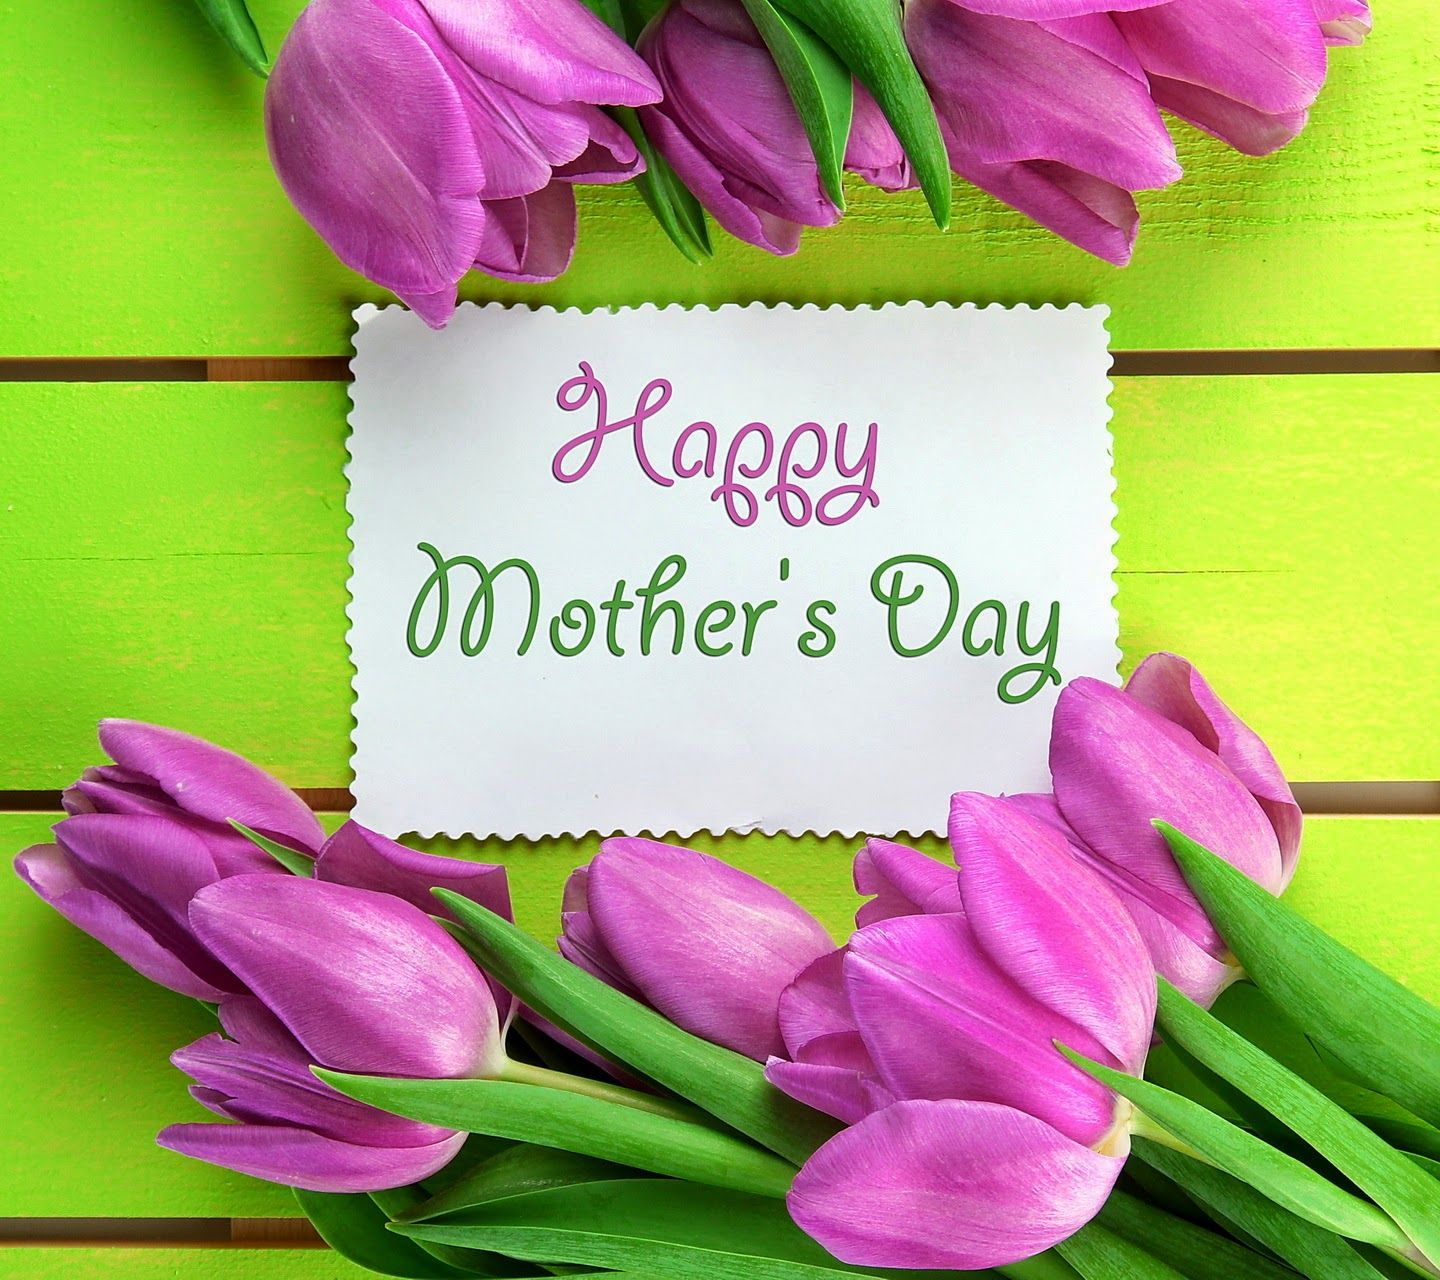 Mothers Day Wallpapers Hd Full Happy Mothers Day Images